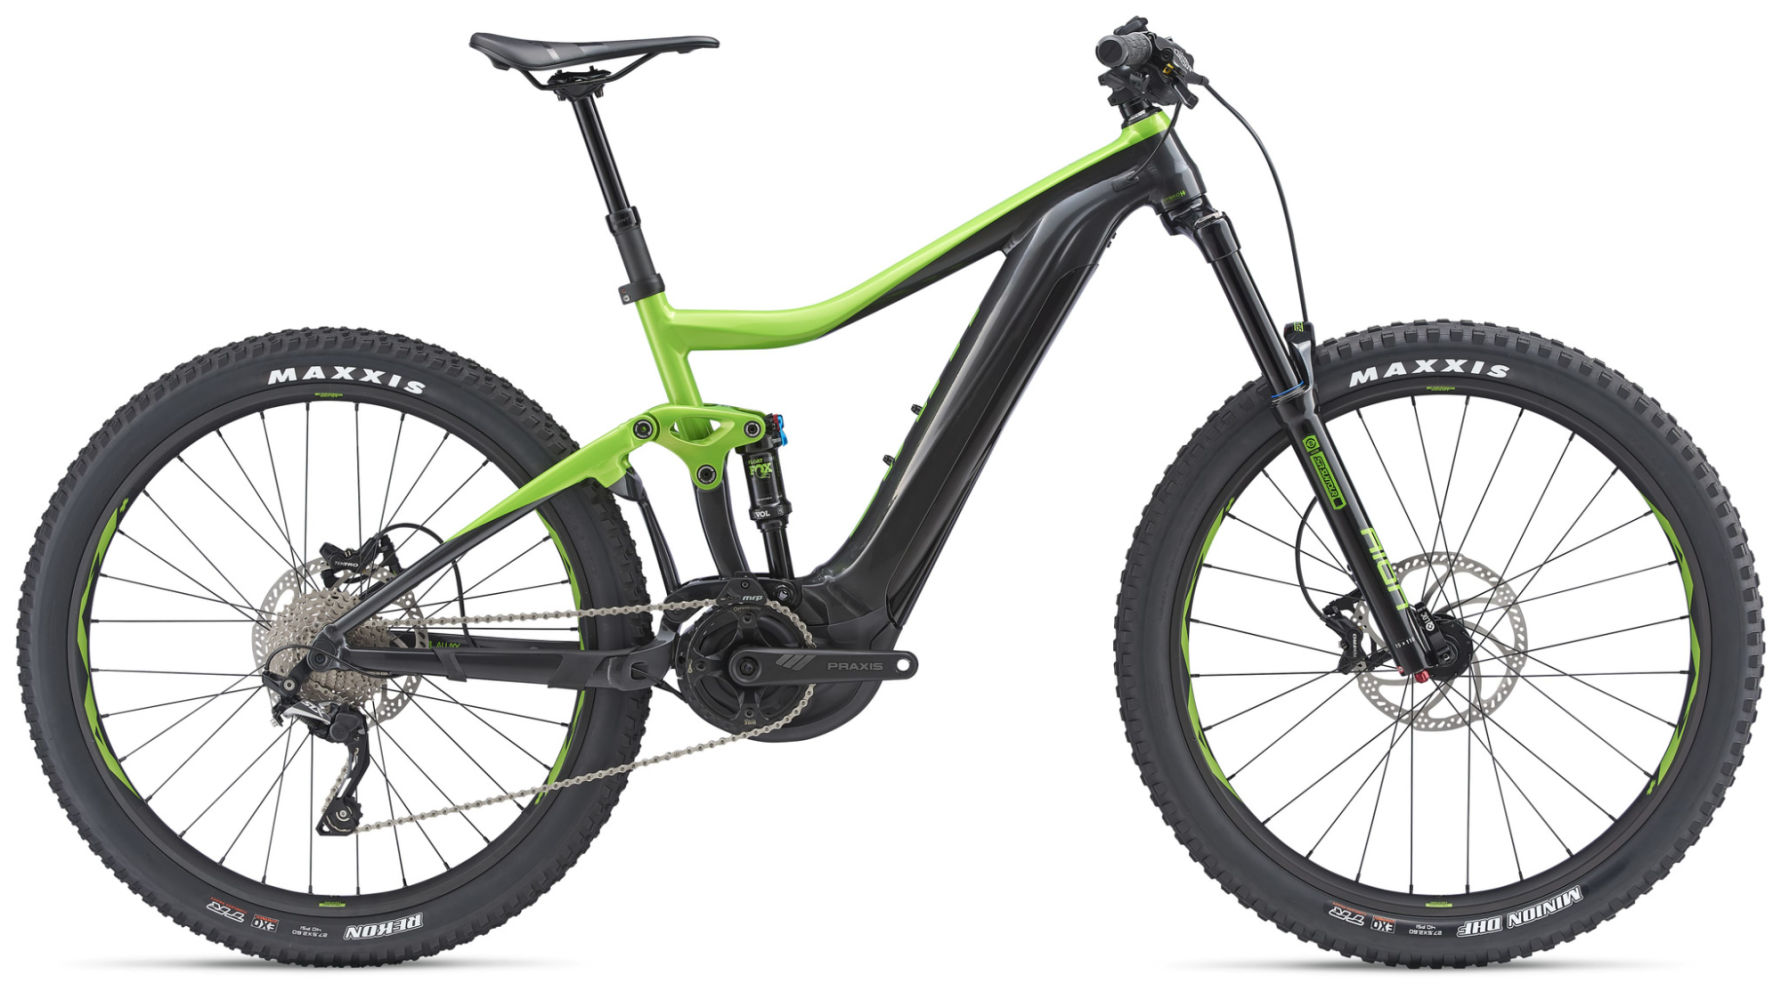 The trance e pro offers a high performance frame and tunable power giving you the power confidence and control to take your off road adventures to a new